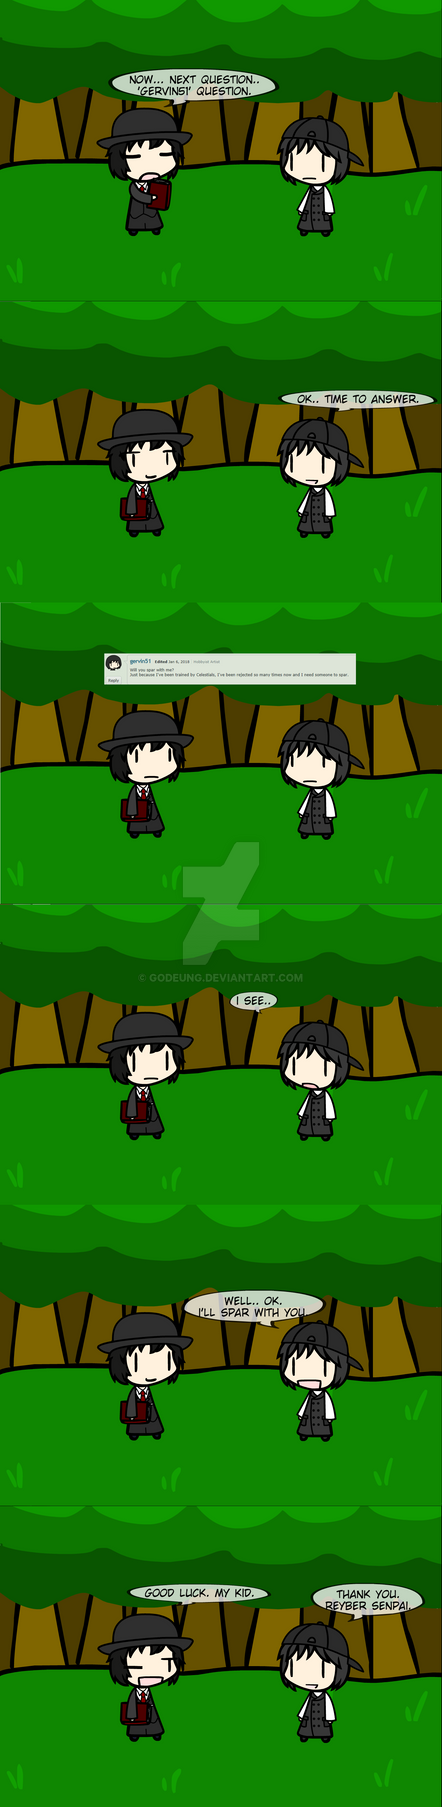 (walfas) New Q and A Ask me! 6 by Godeung